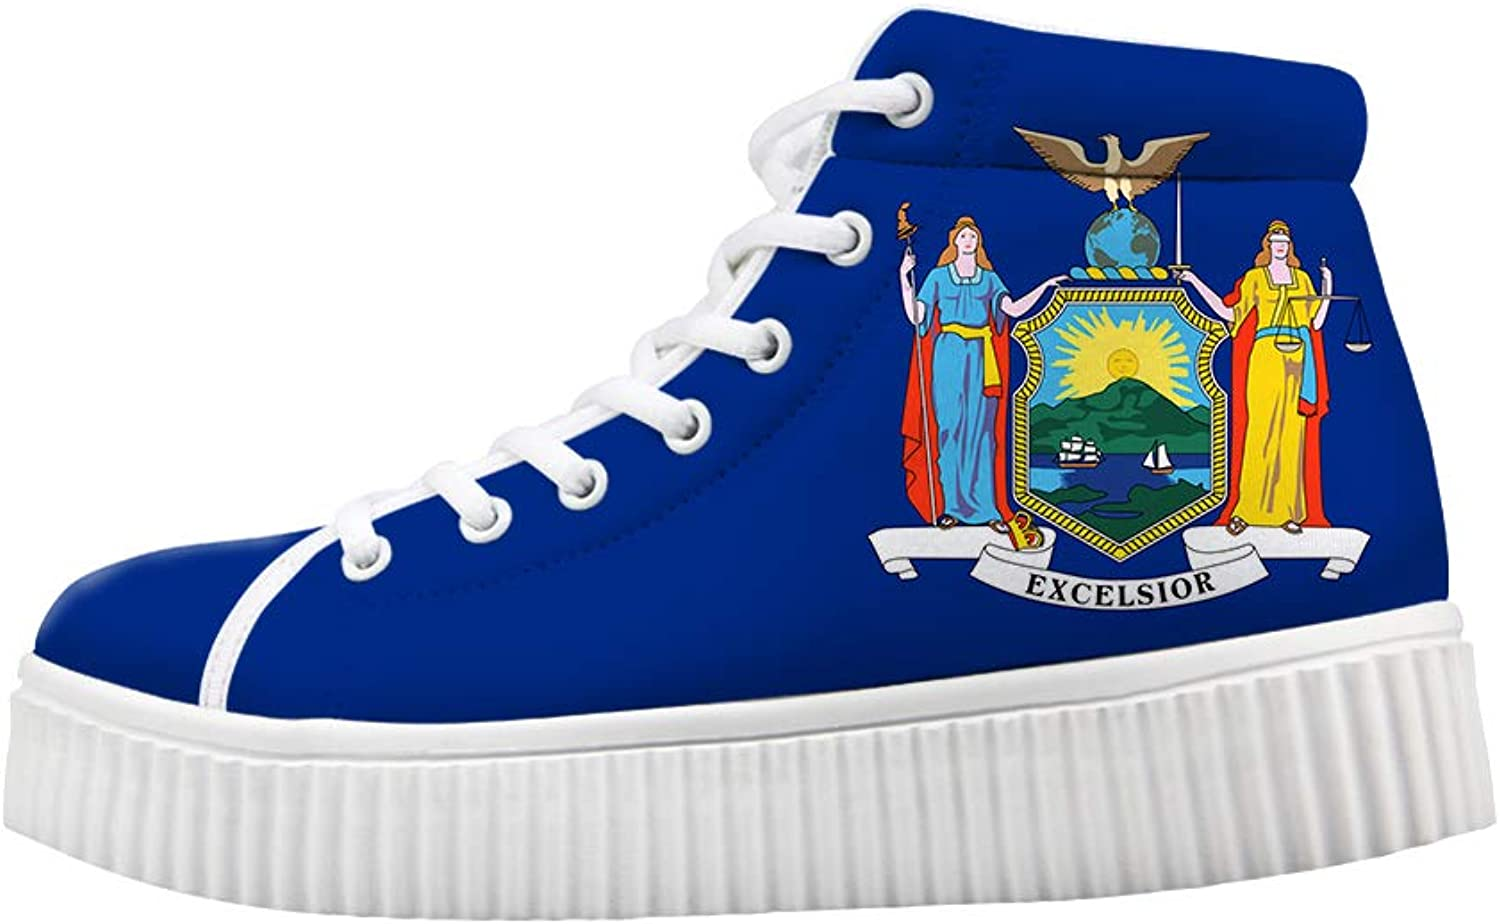 Owaheson Platform Lace up Sneaker Casual Chunky Walking shoes Women Goddess New York Flag